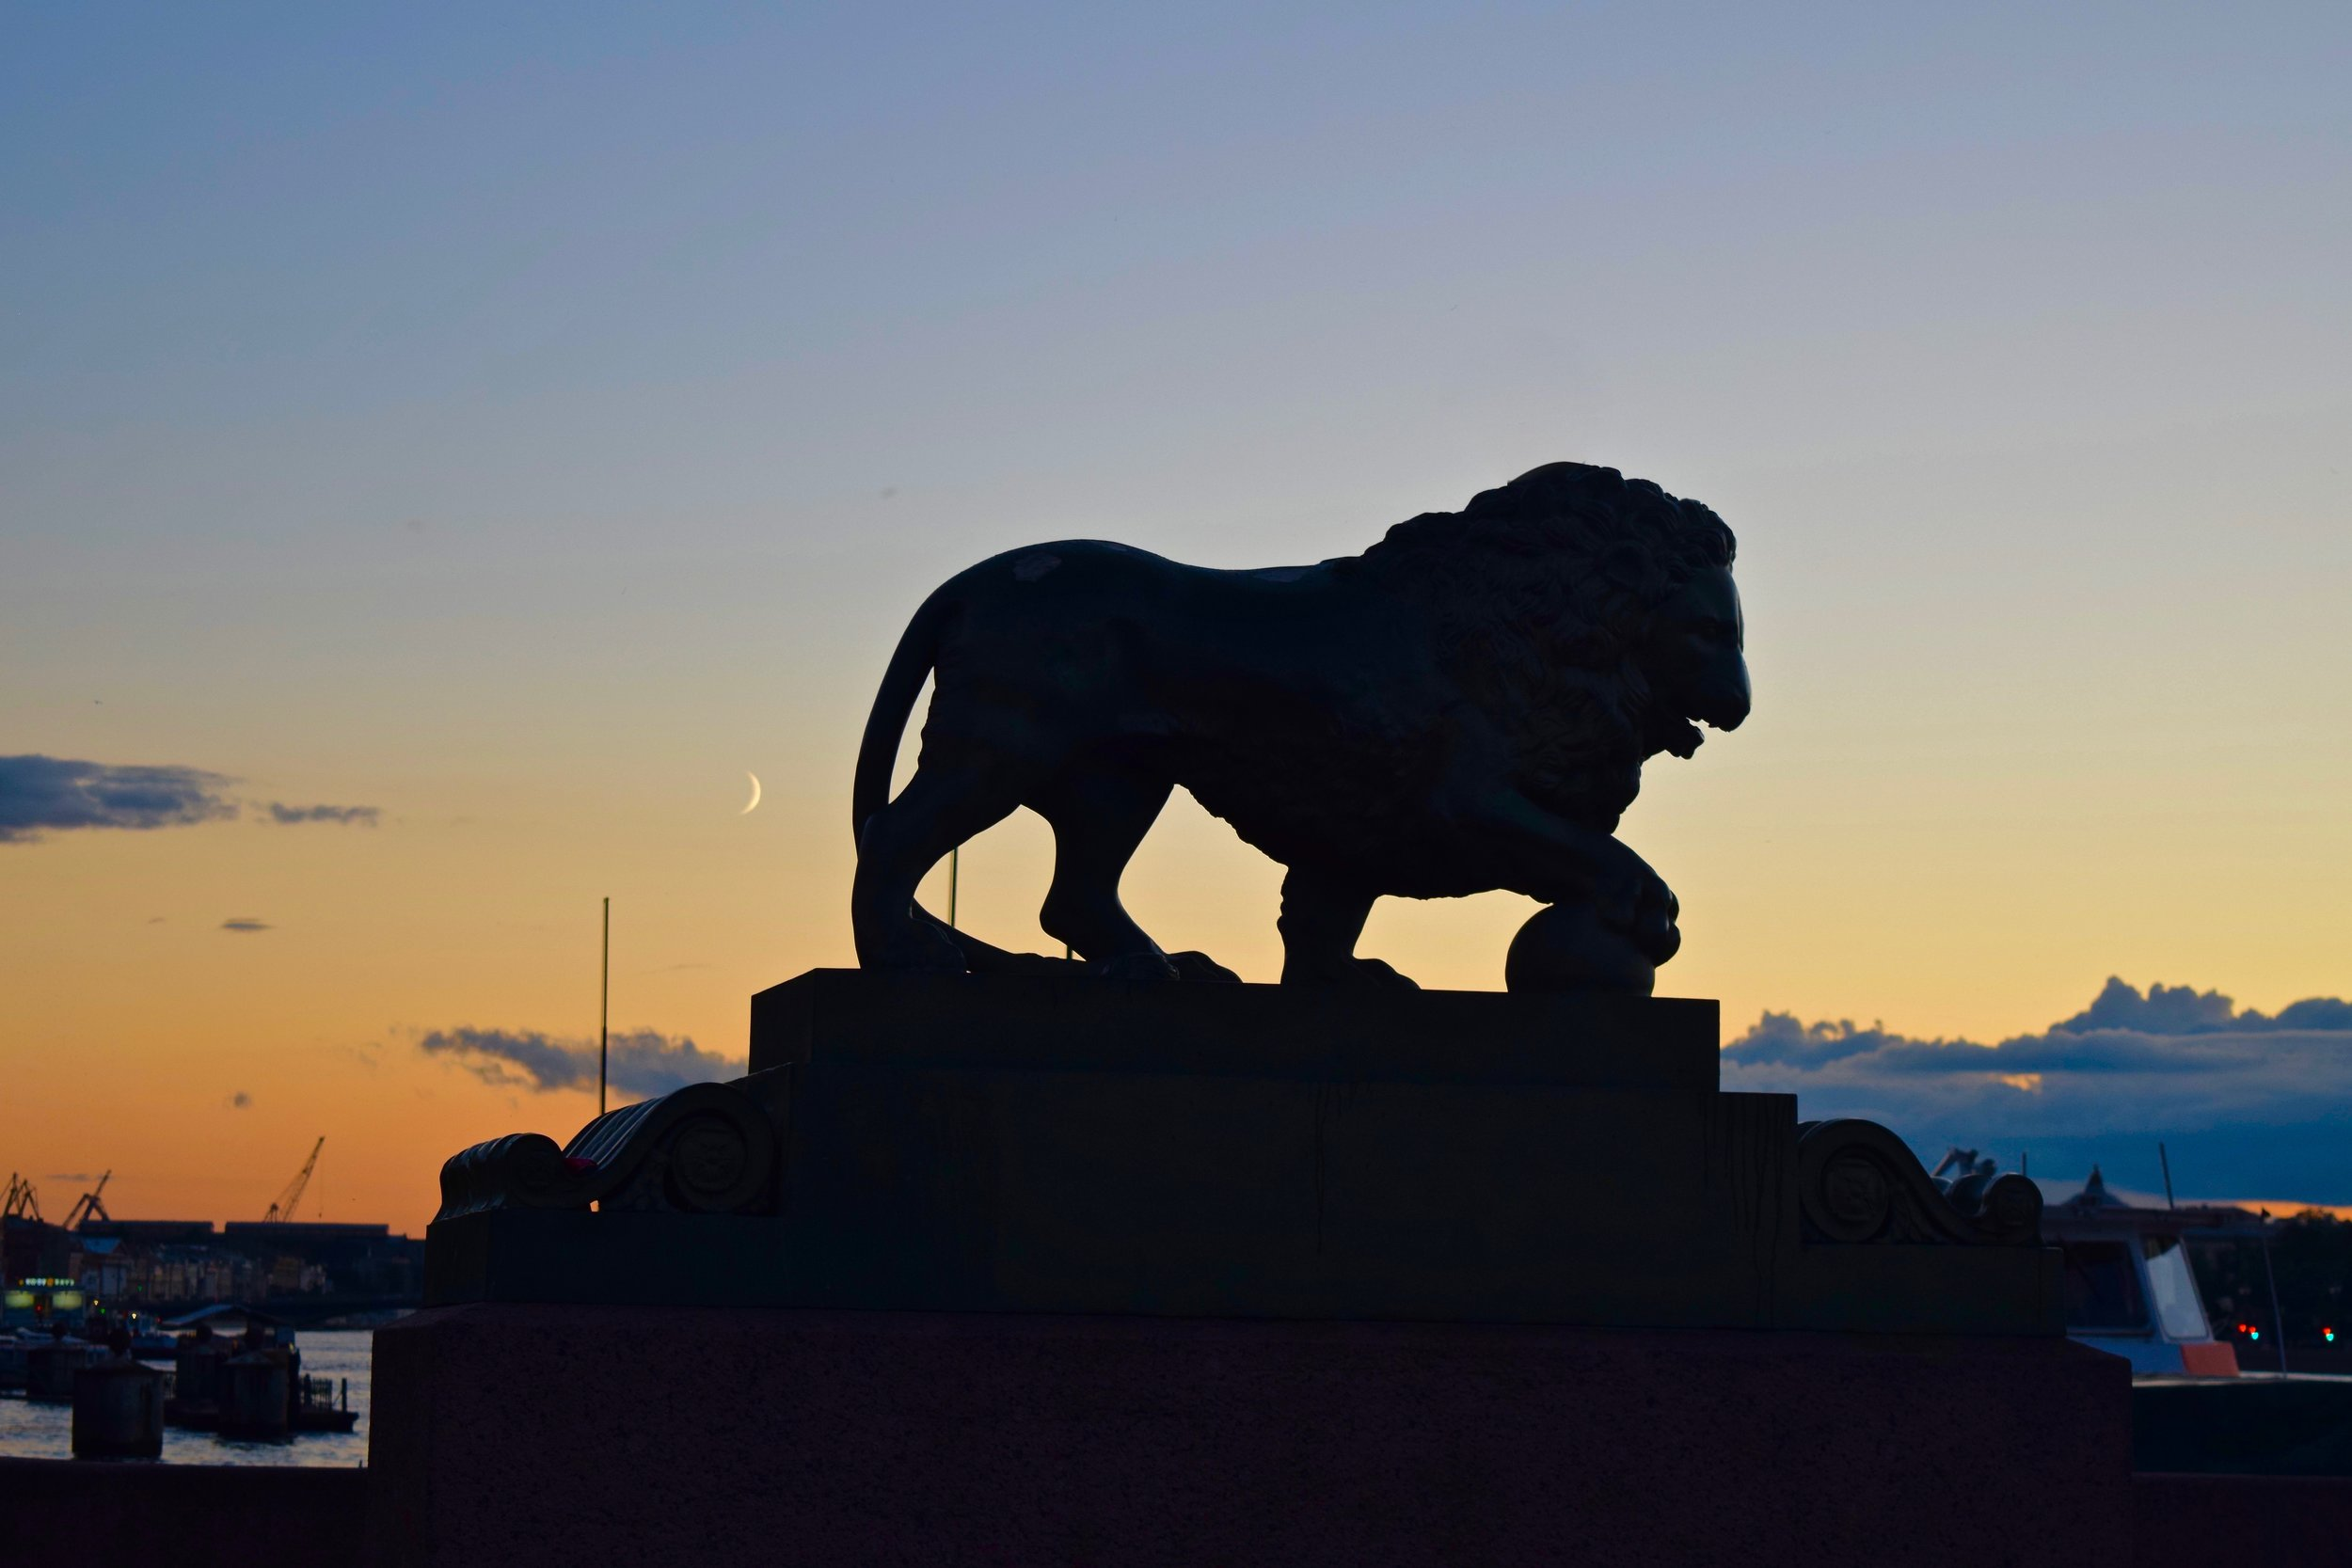 Statue of a lion on Palace Pier